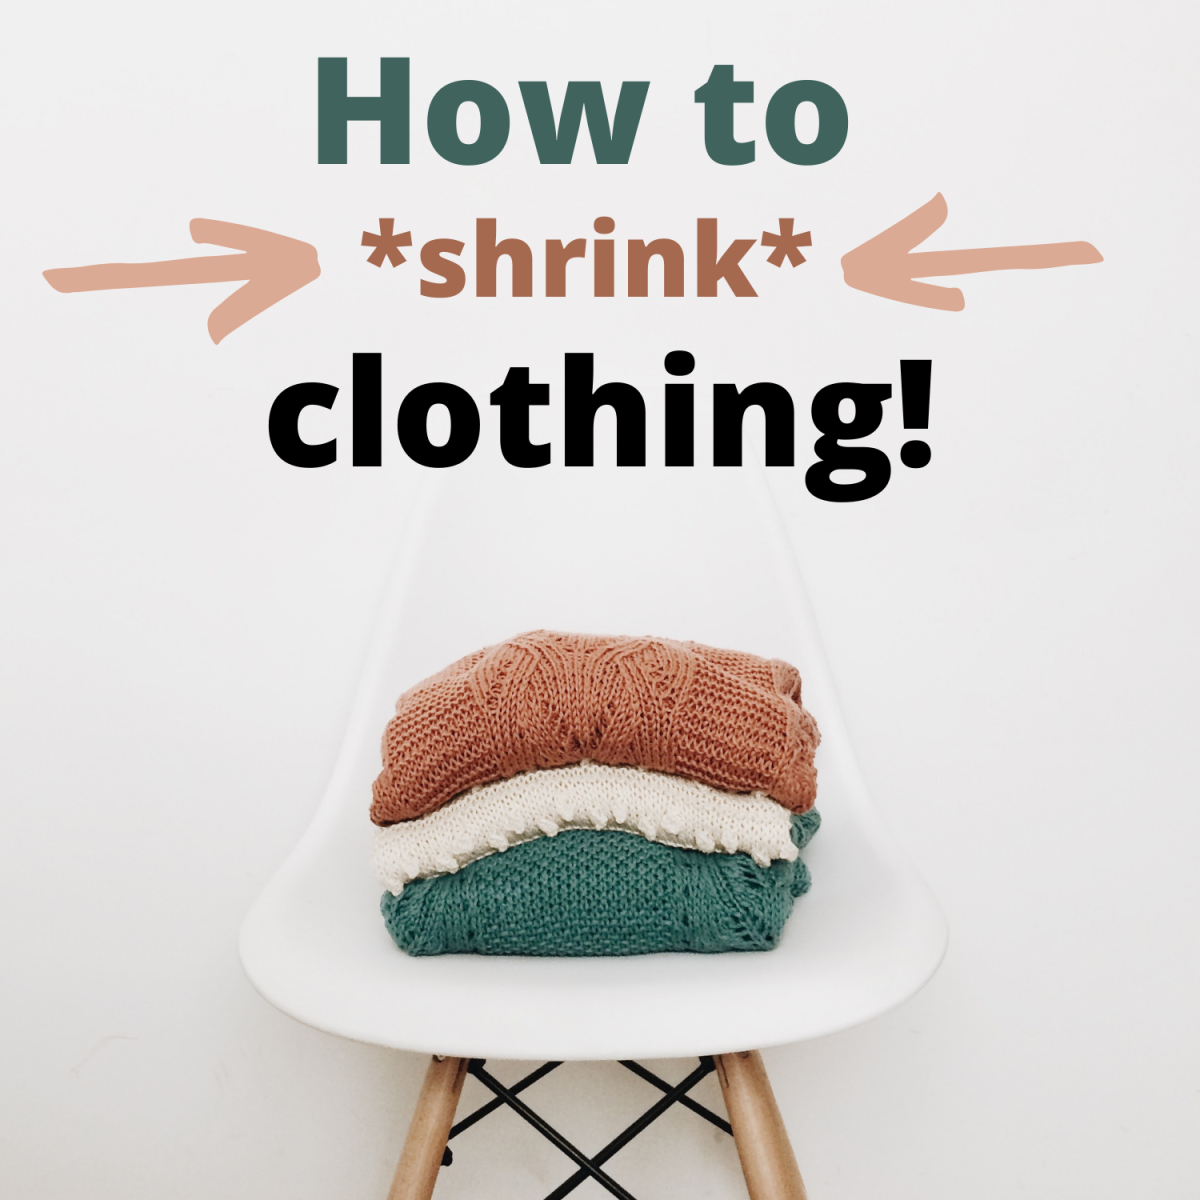 How to make too-big clothes just a bit smaller.